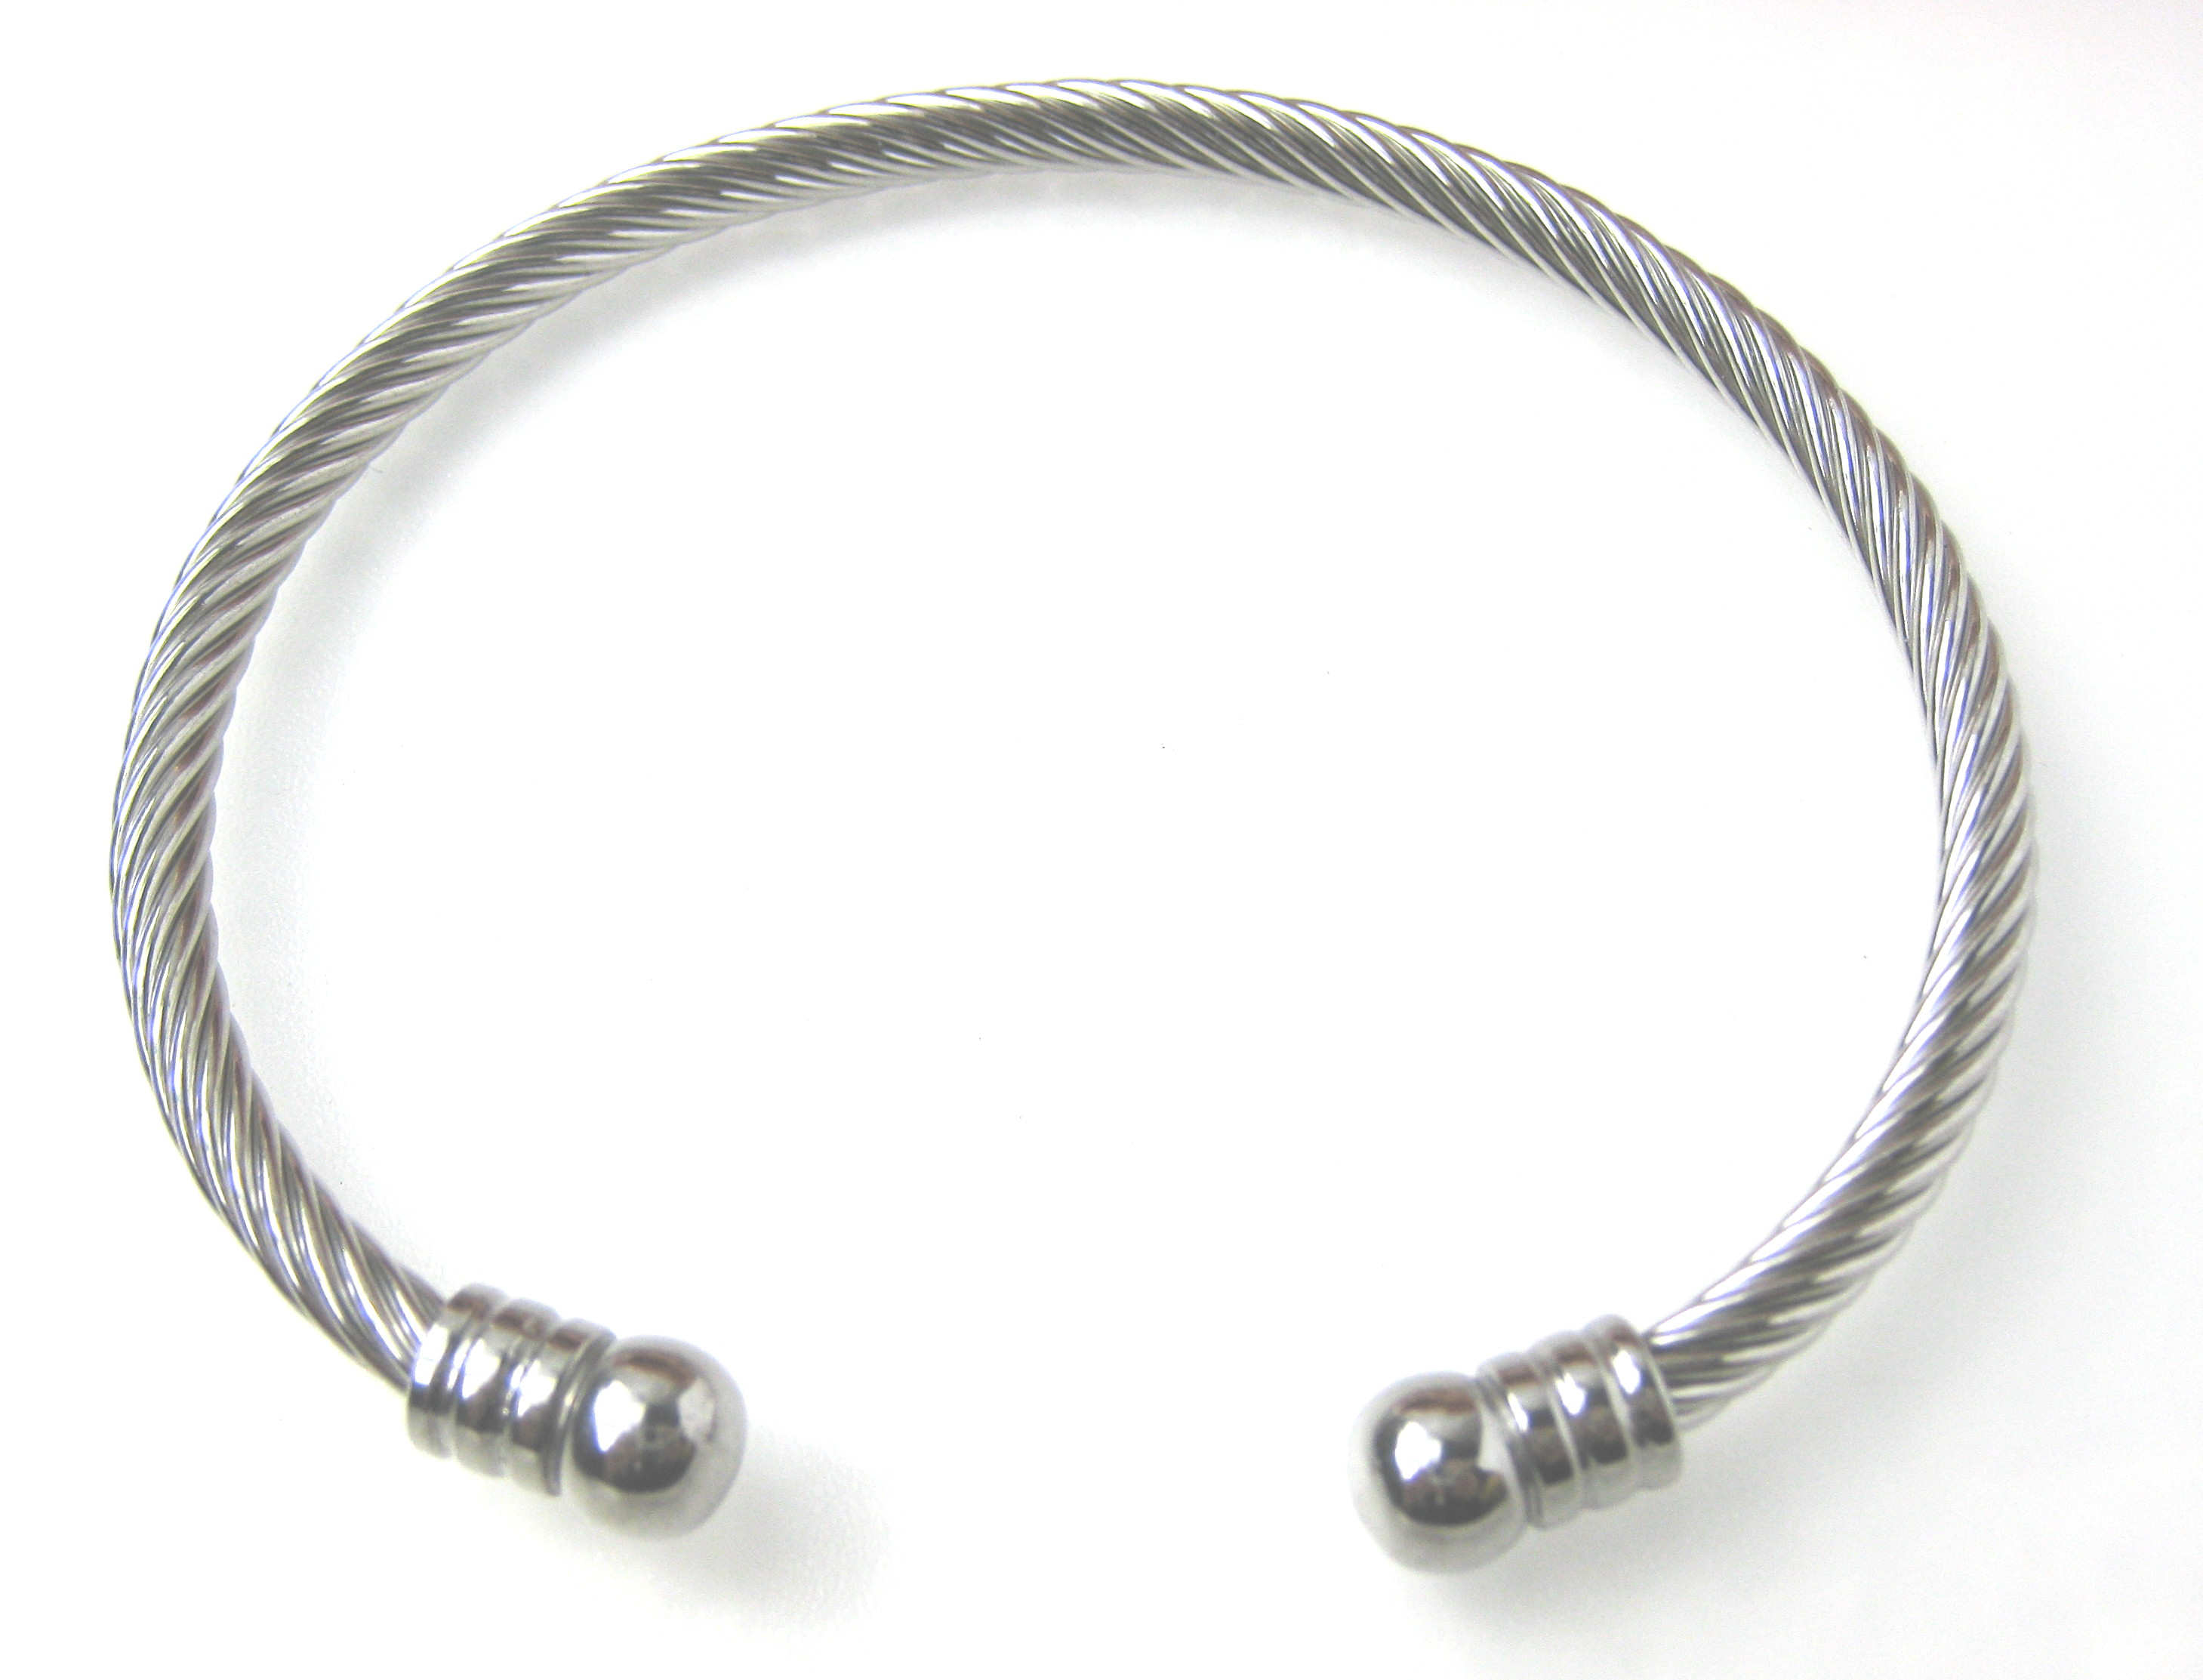 Stainless Steel Bangle Bracelet - f-br7